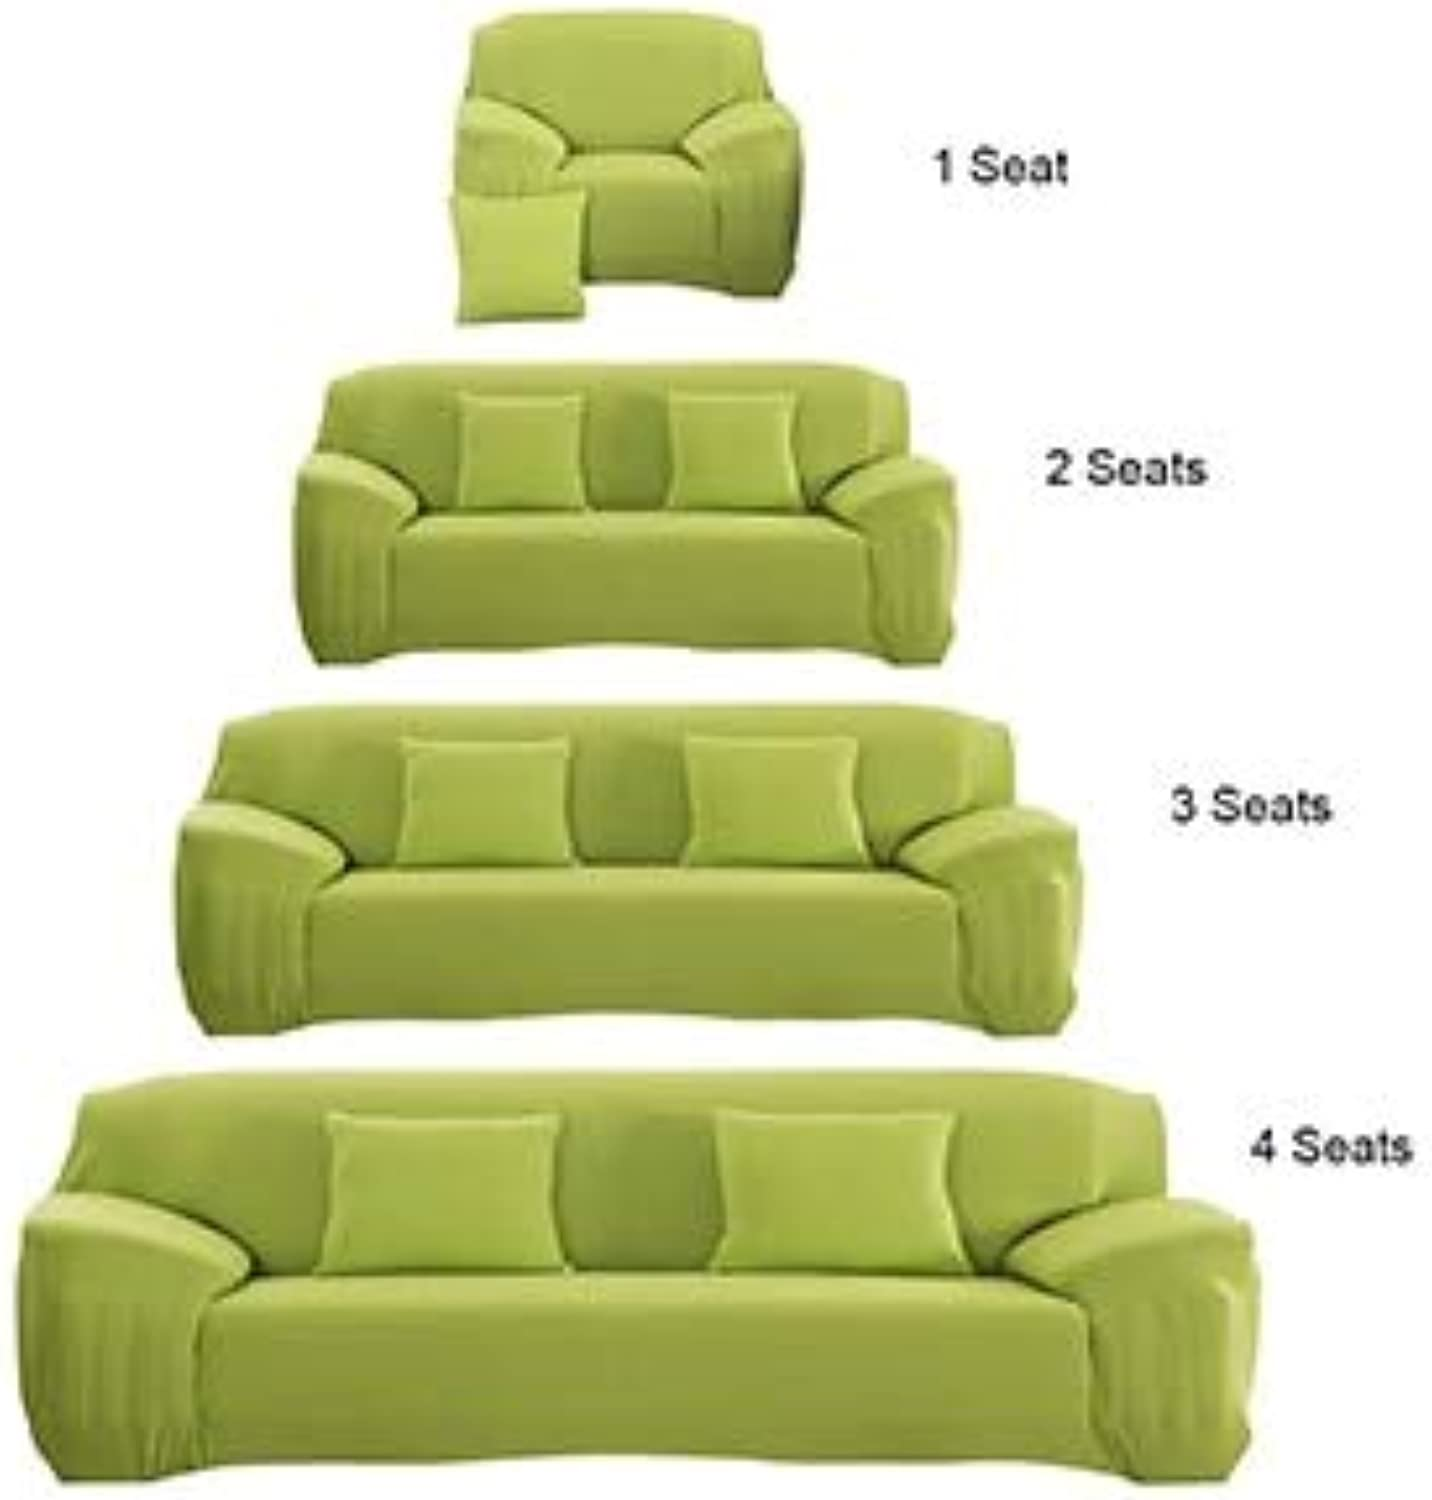 Sofa Cover Flexible Stretch Big Elasticity Couch Cover Sofa Funiture Cover for Single Two Three Four Seats Soft Flannel Slipcove   Green, 2 Seats